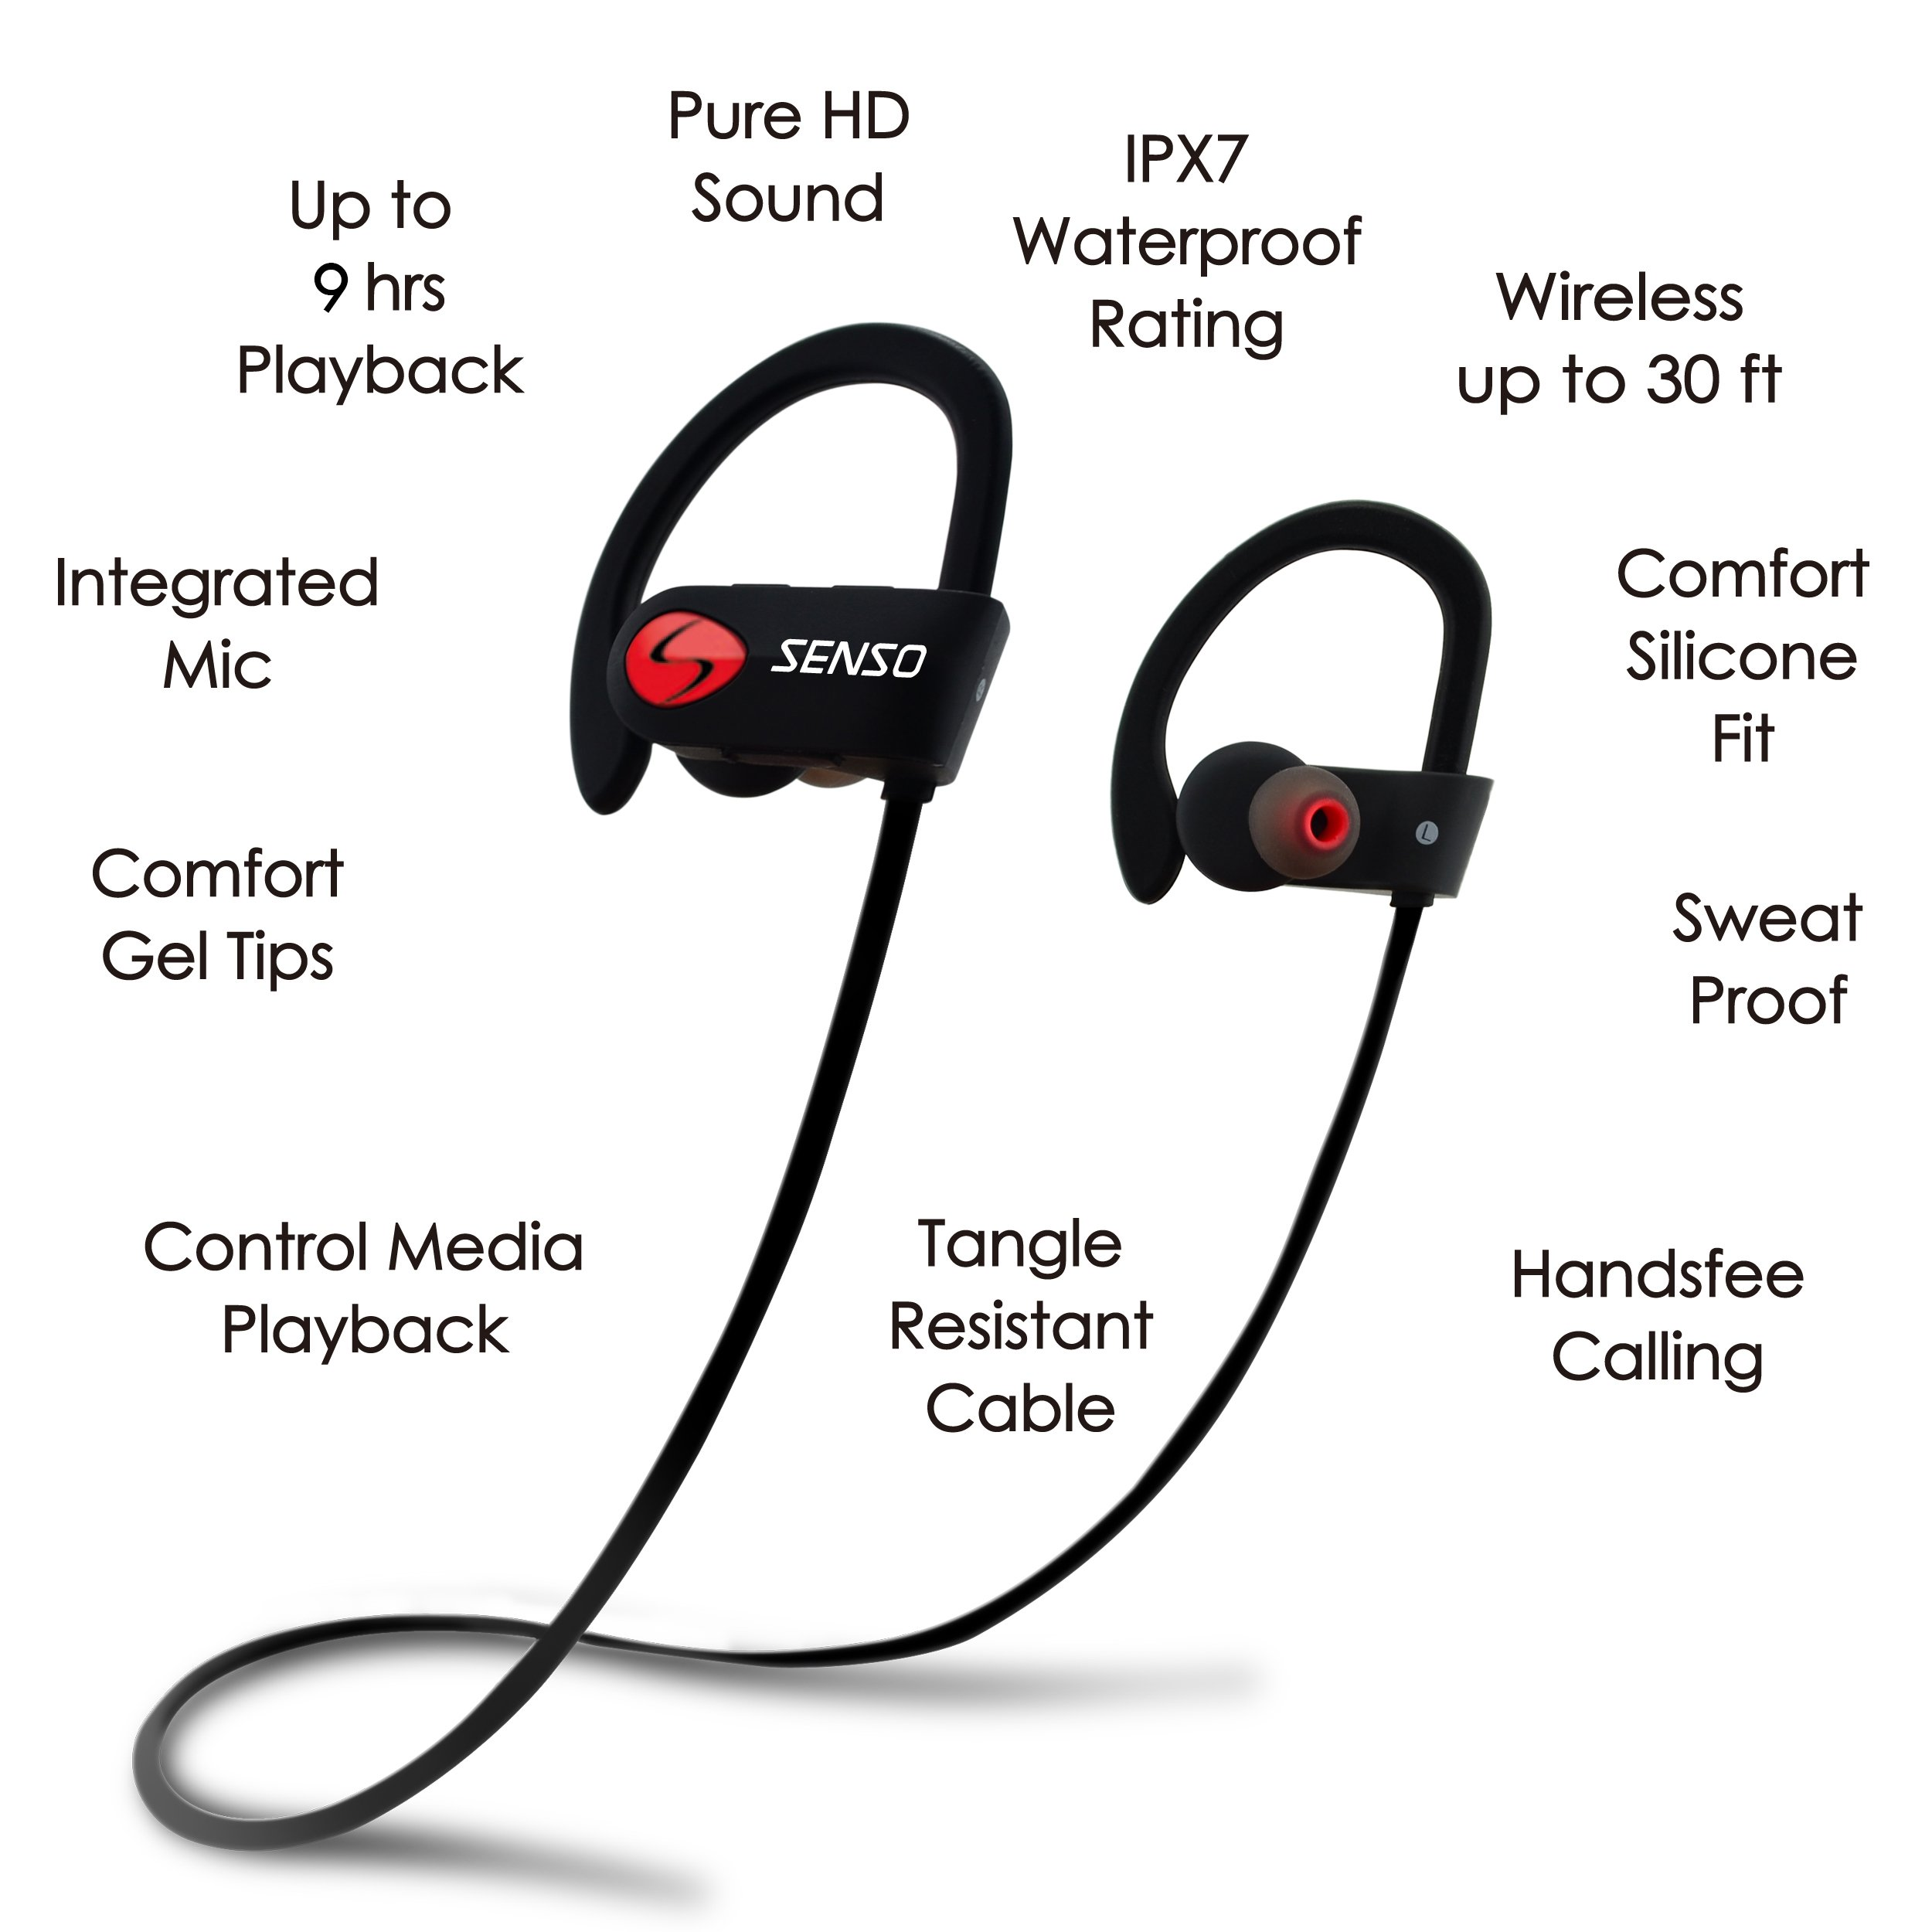 SENSO Bluetooth Headphones, Best Wireless Sports Earphones w/Mic IPX7 Waterproof HD Stereo Sweatproof Earbuds for Gym Running Workout 8 Hour Battery Noise Cancelling Headsets by Senso (Image #4)